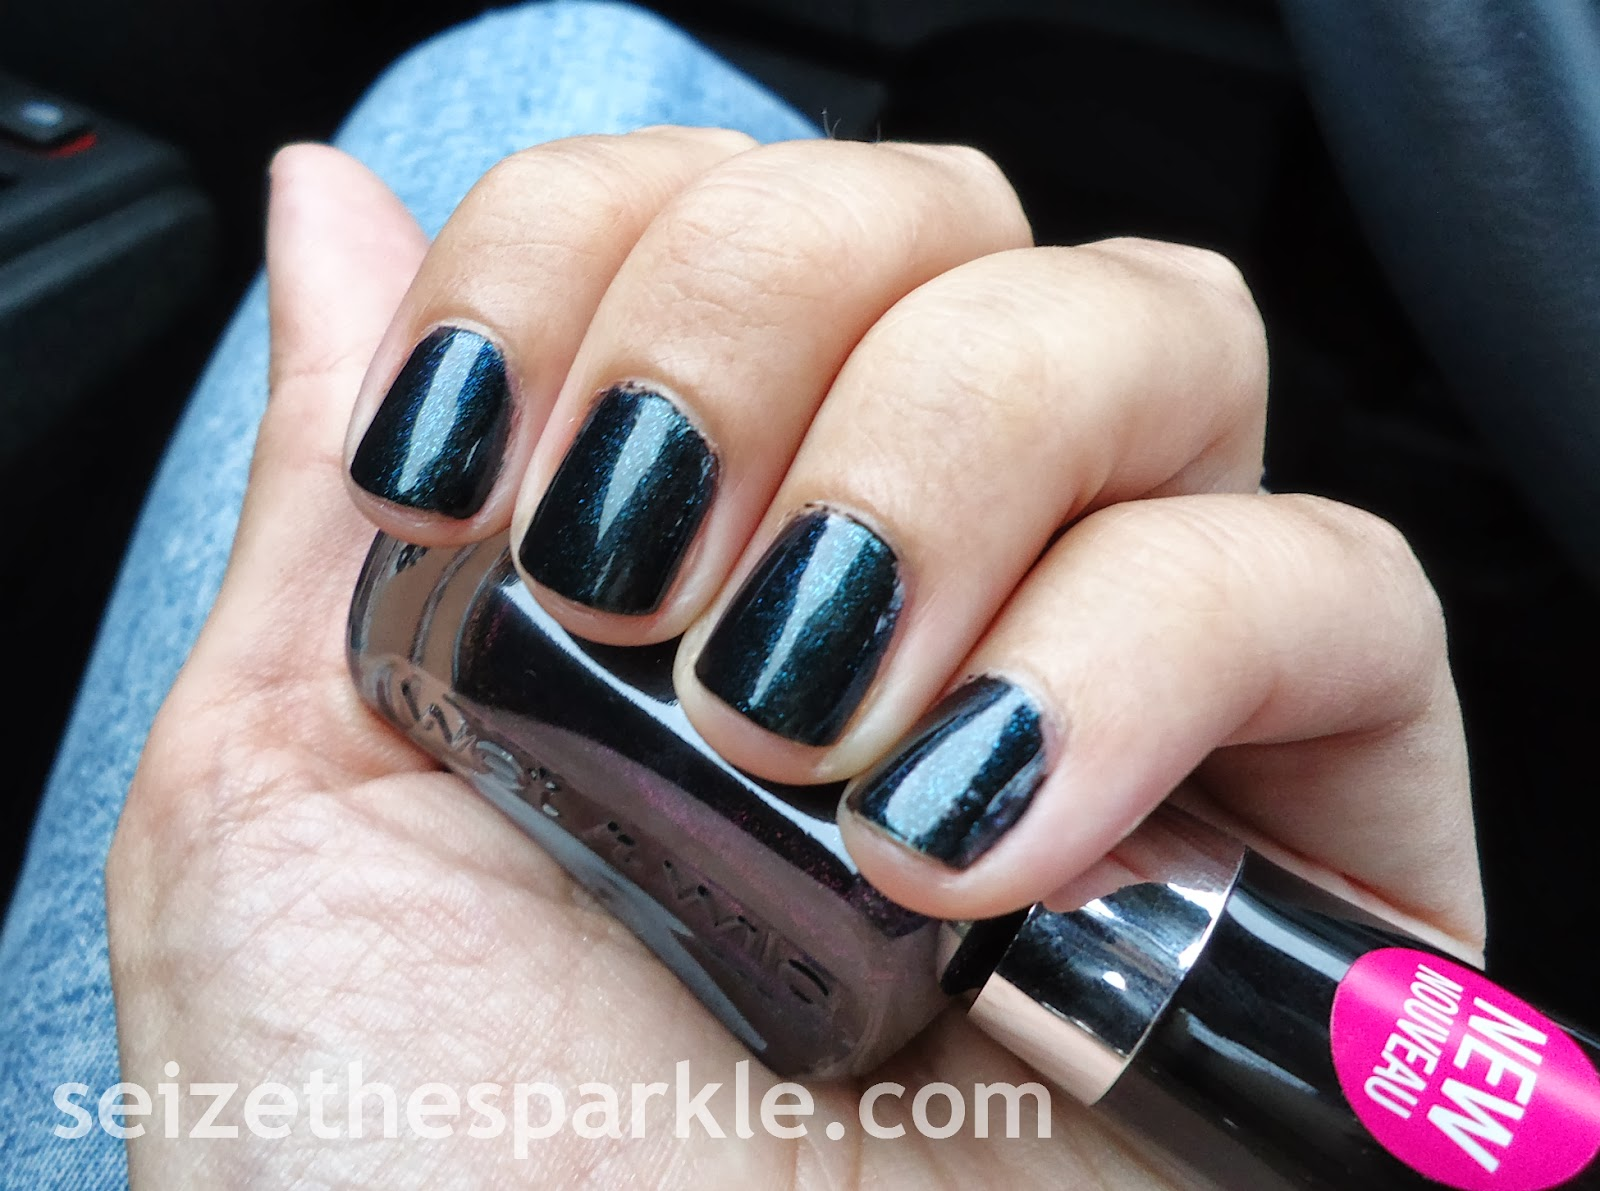 Blackened Teal Shimmer Nail Polish